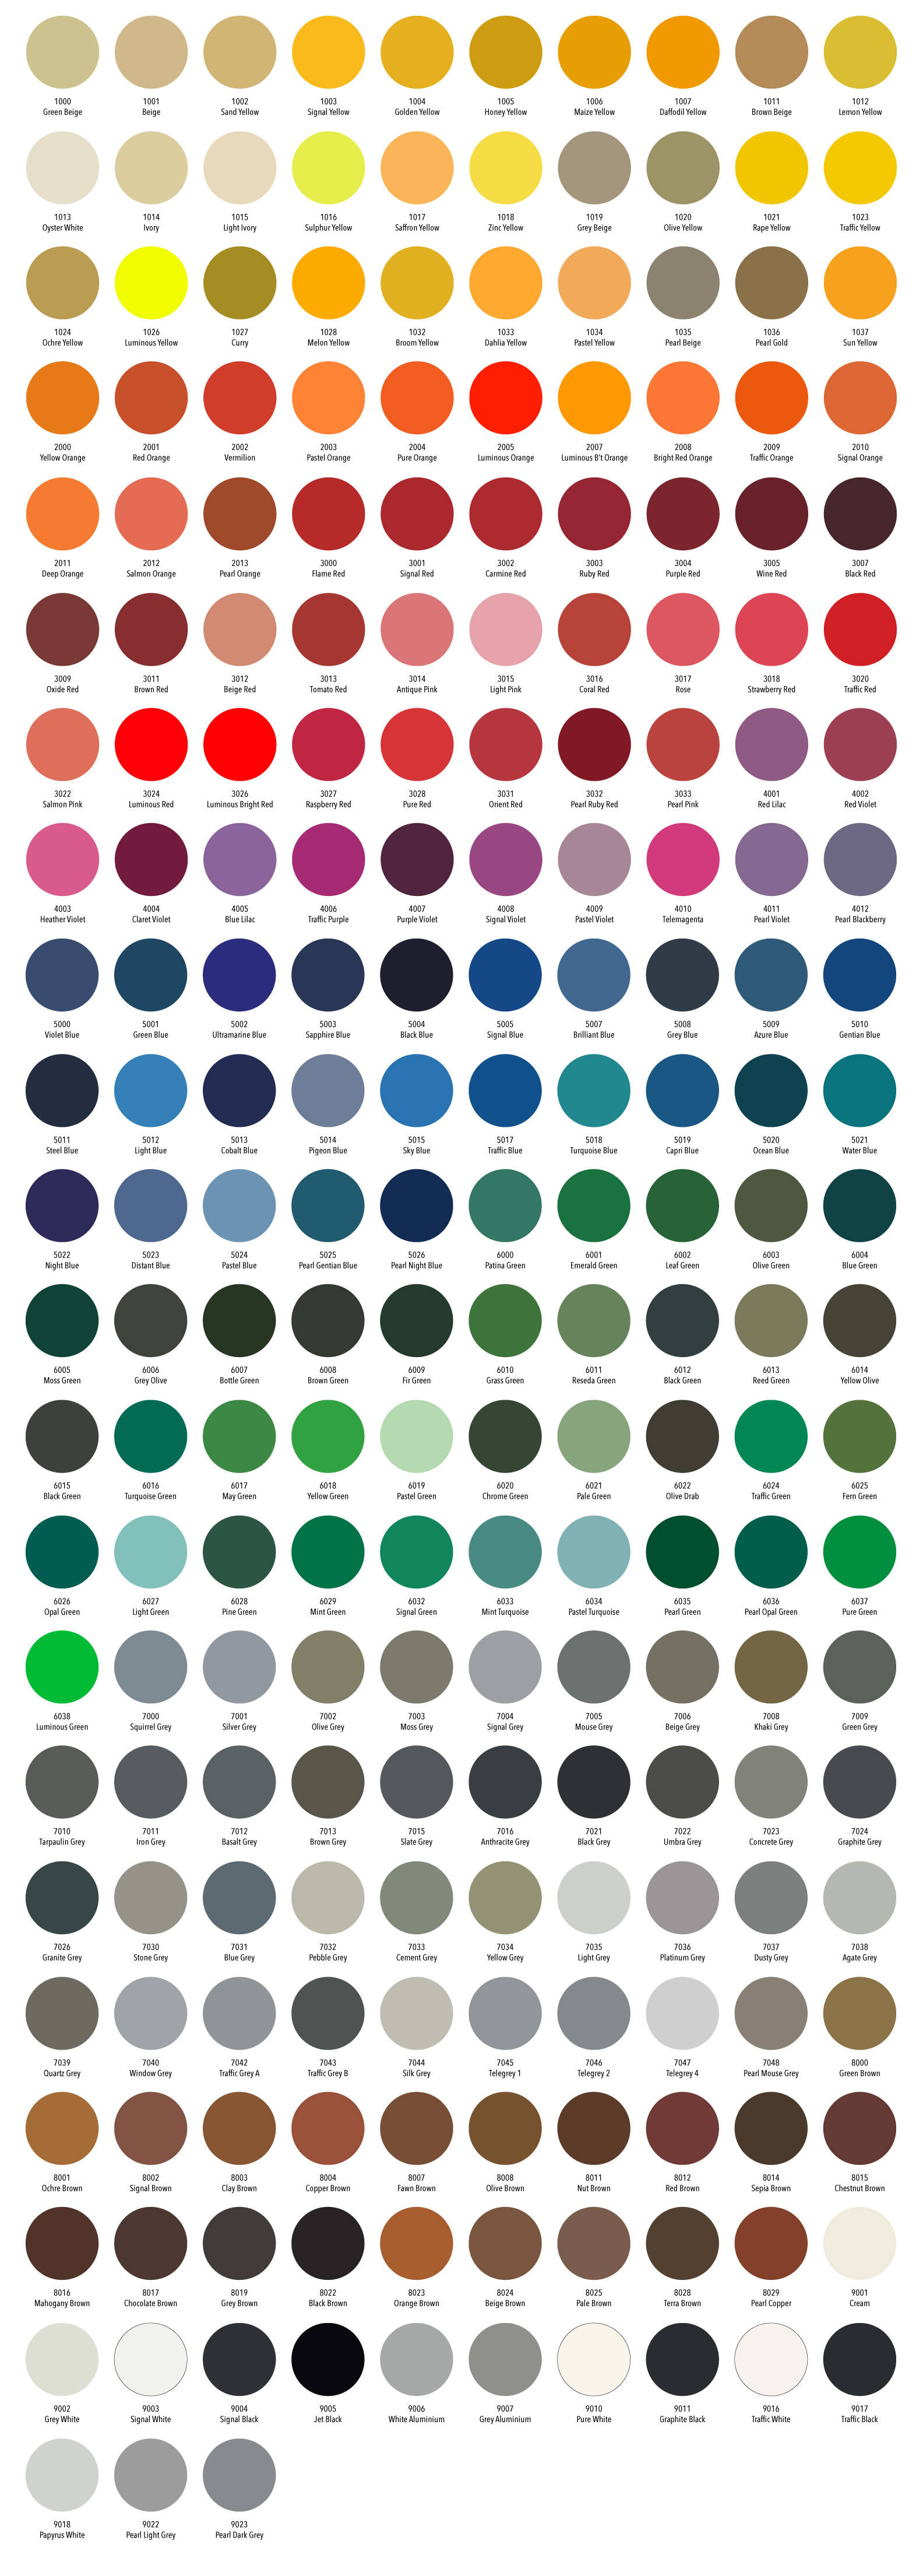 RAL_color_chart